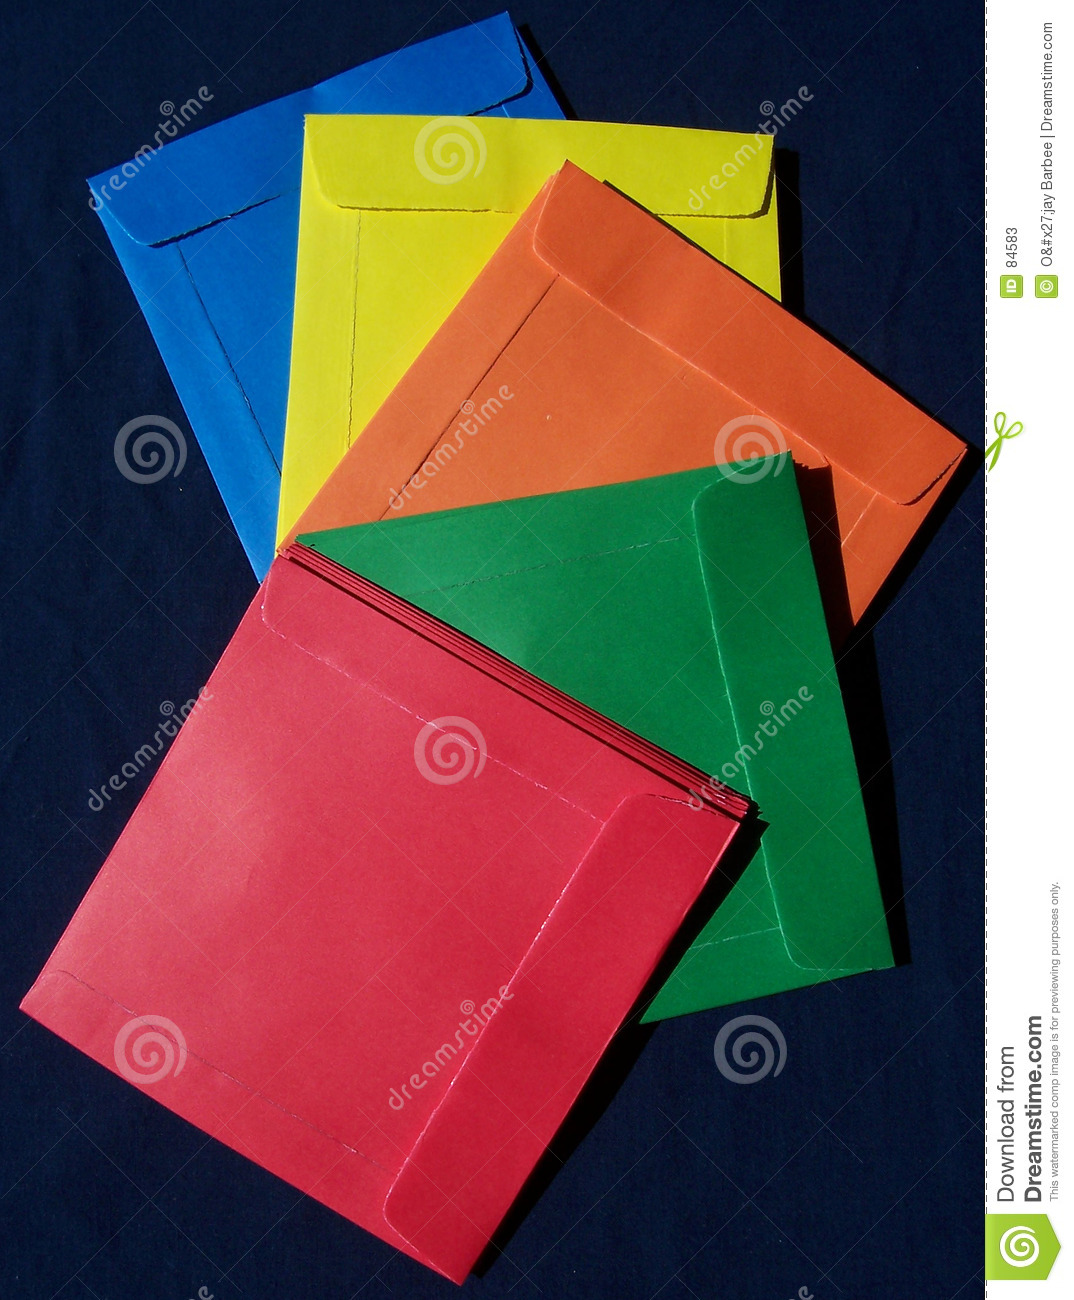 Paper CD Covers Stock Photos - Image: 84583